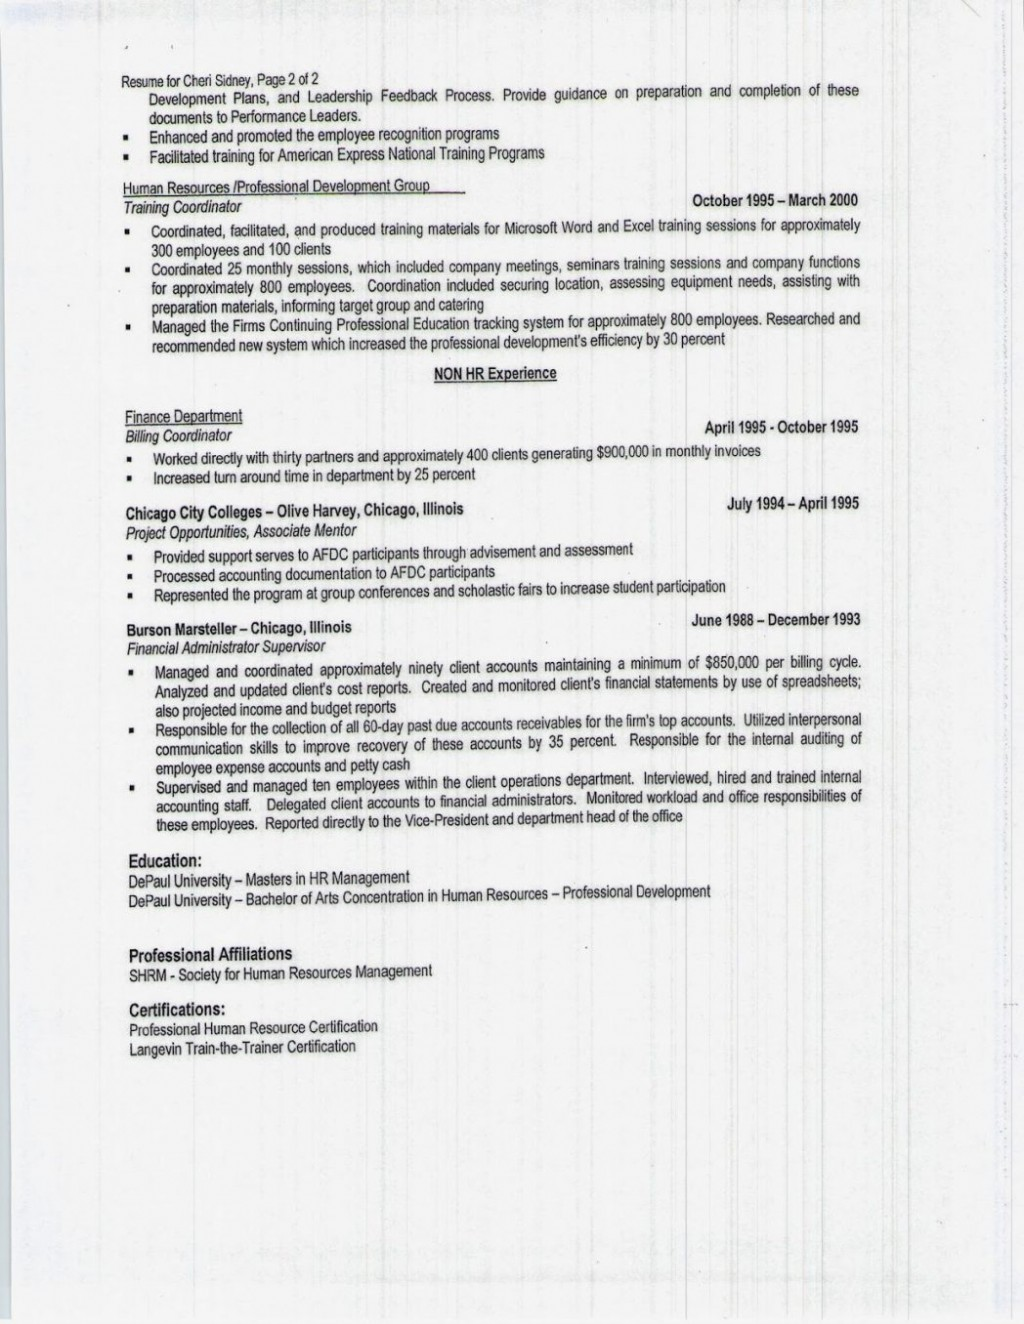 016 Essay Example No Scholarships Scholarship And Travel College School Sidne Colleges With Requirement Texas 1048x1356 Without Stunning Essays In Required For Students Examples Large